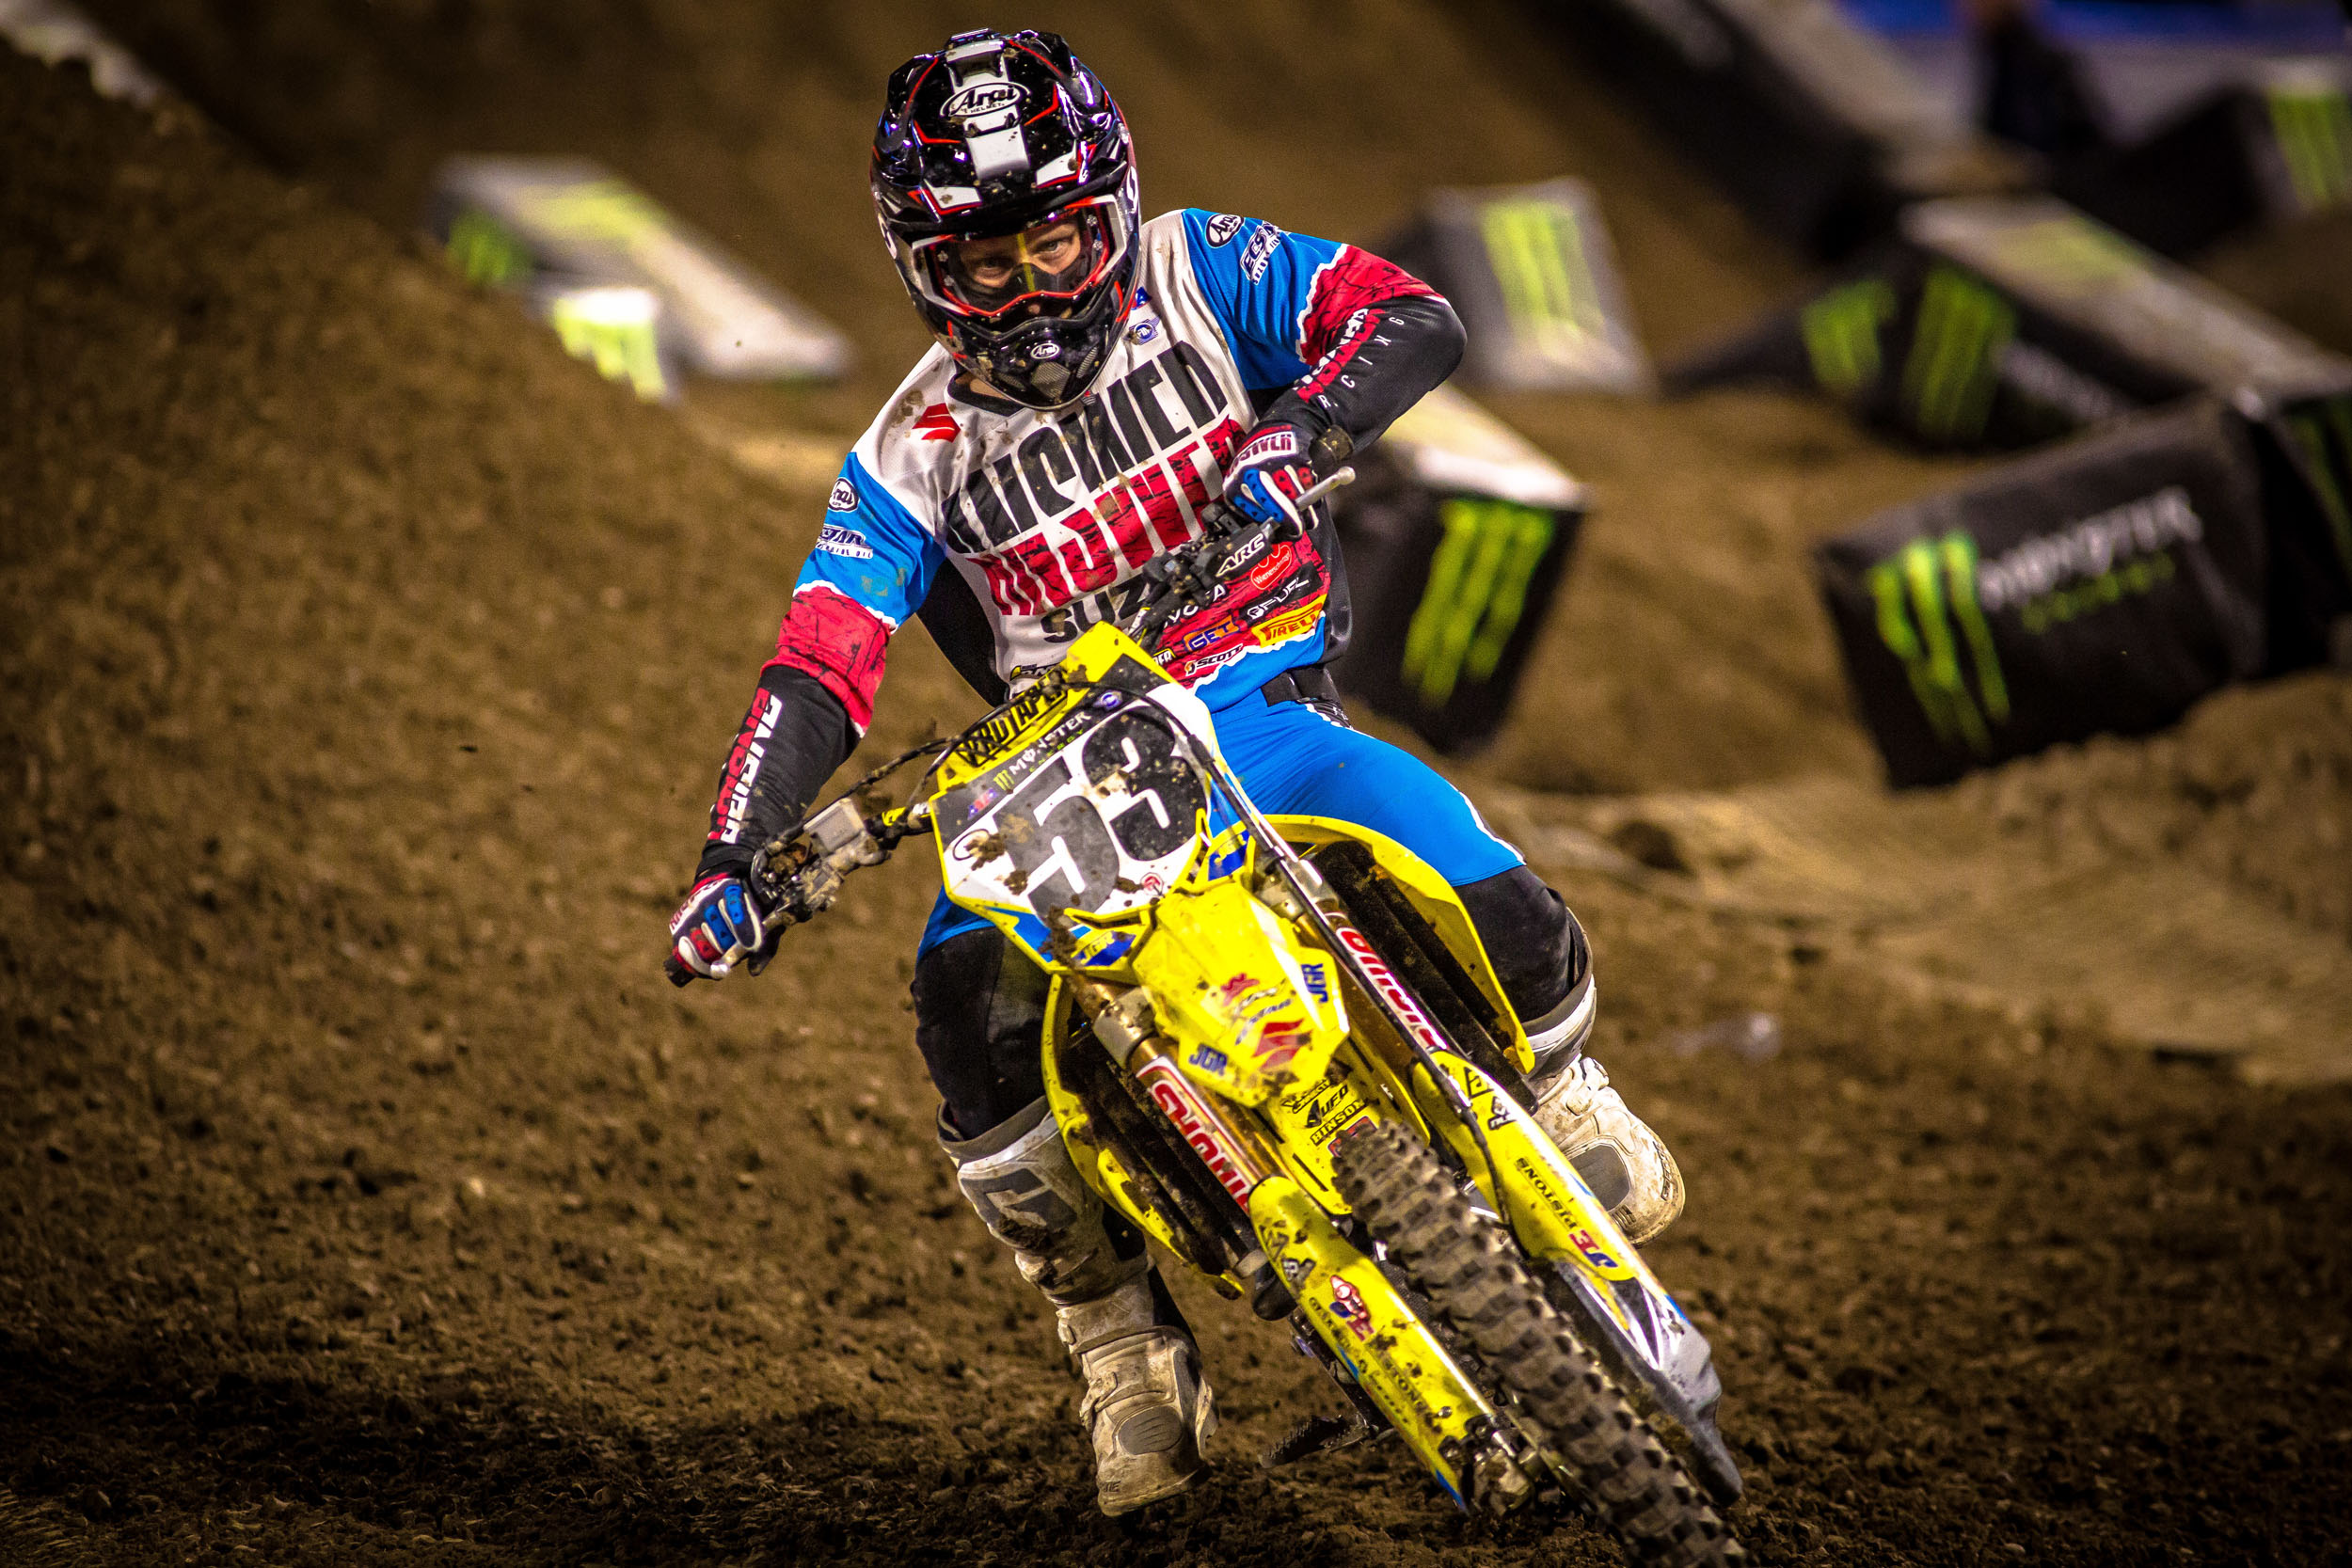 Jimmy Decotis (#53) gives his RM-Z450 a final go in Anaheim before transiting to the 250 class